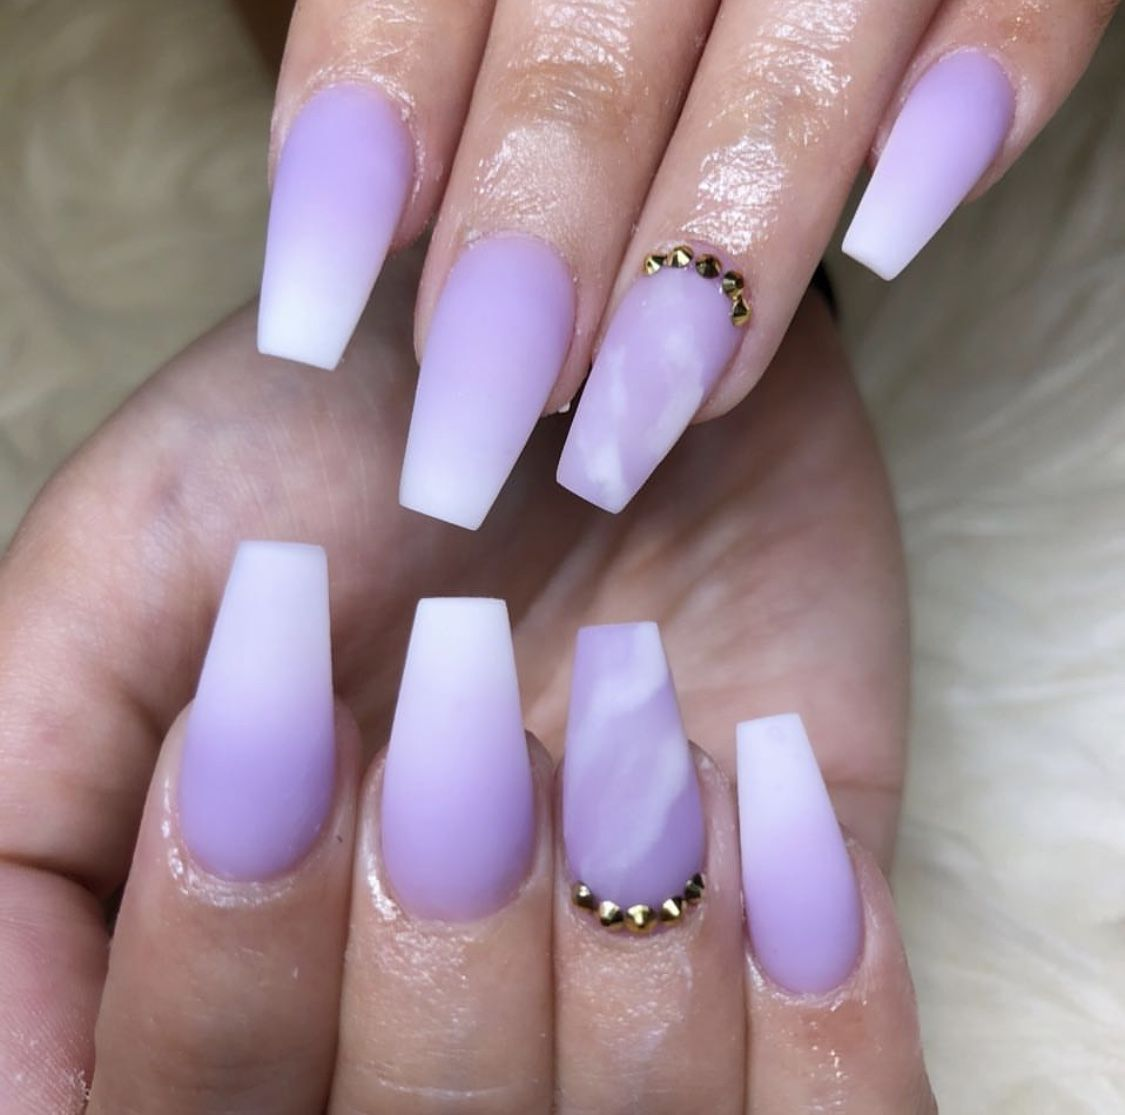 Lavender Purple And White Ombre Nails - NailsTip